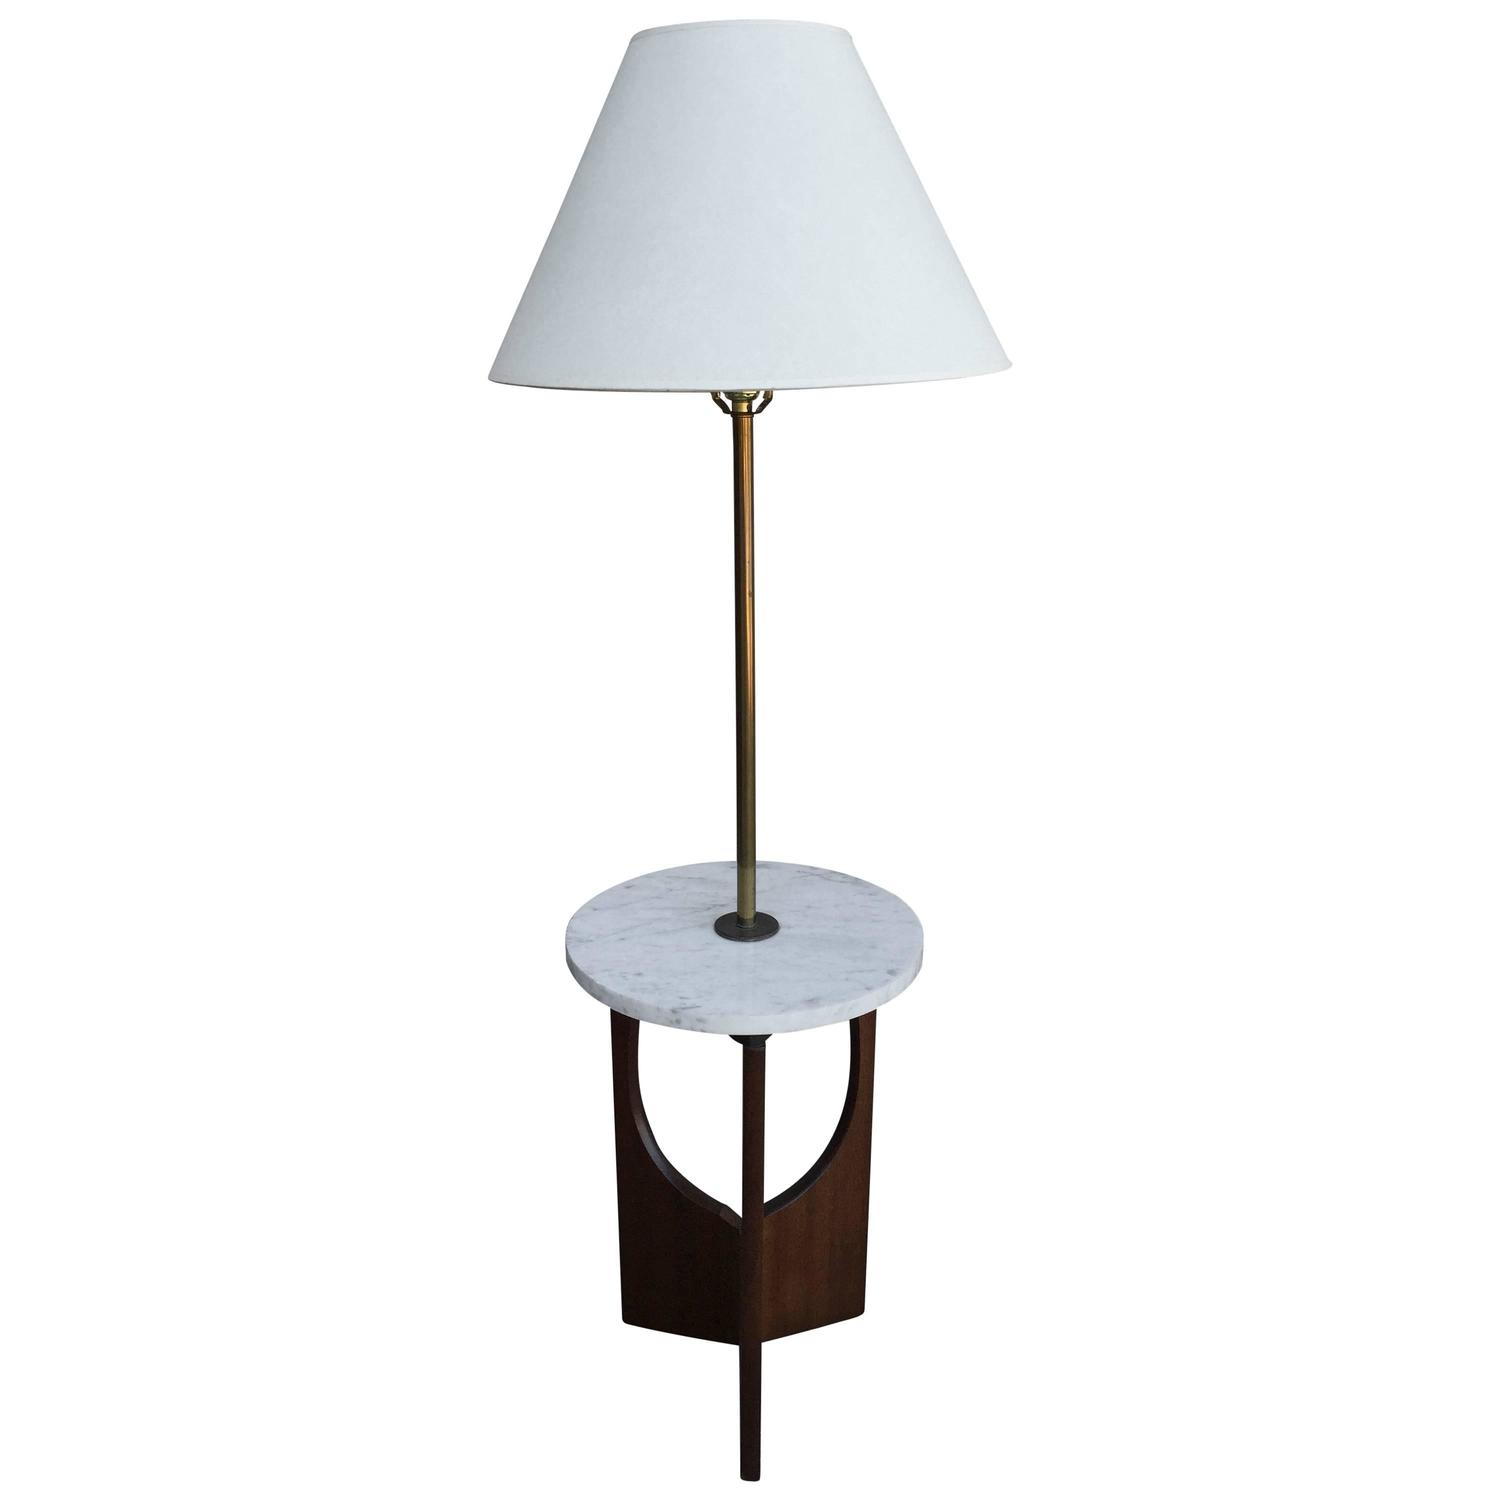 Adrian Pearsall Petit Table Floor Lamp For Sale At 1stdibs